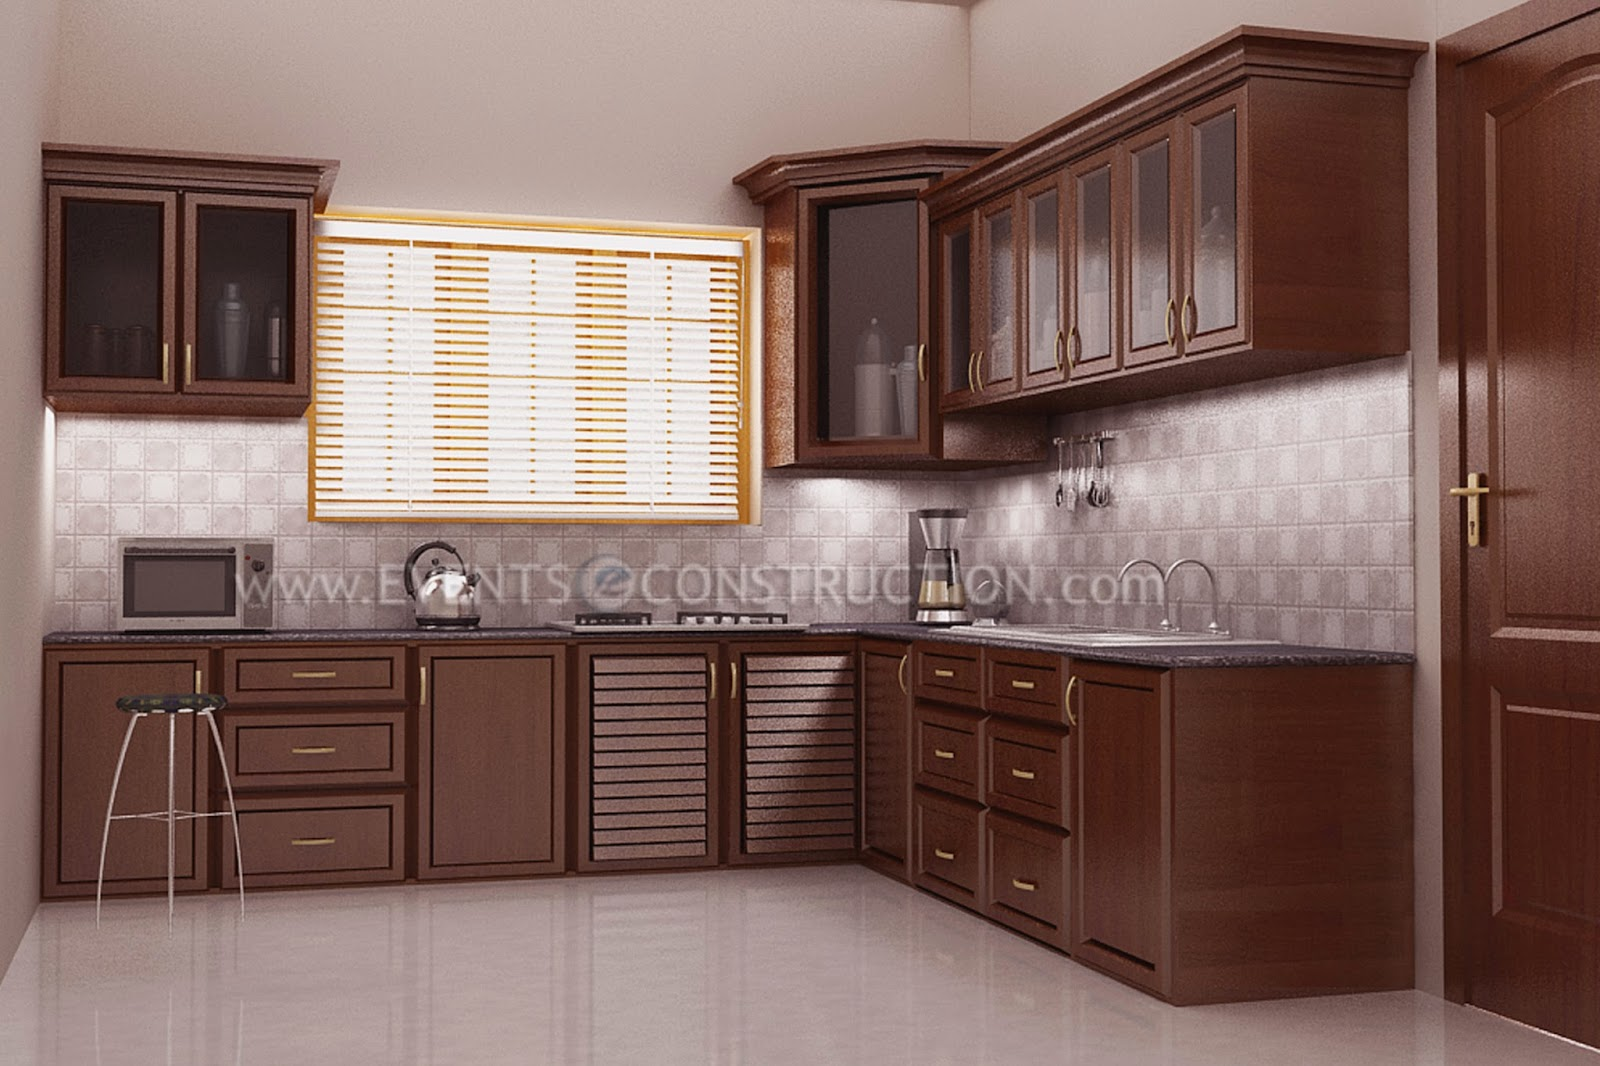 Evens construction pvt ltd kitchen design with wooden for House kitchen images